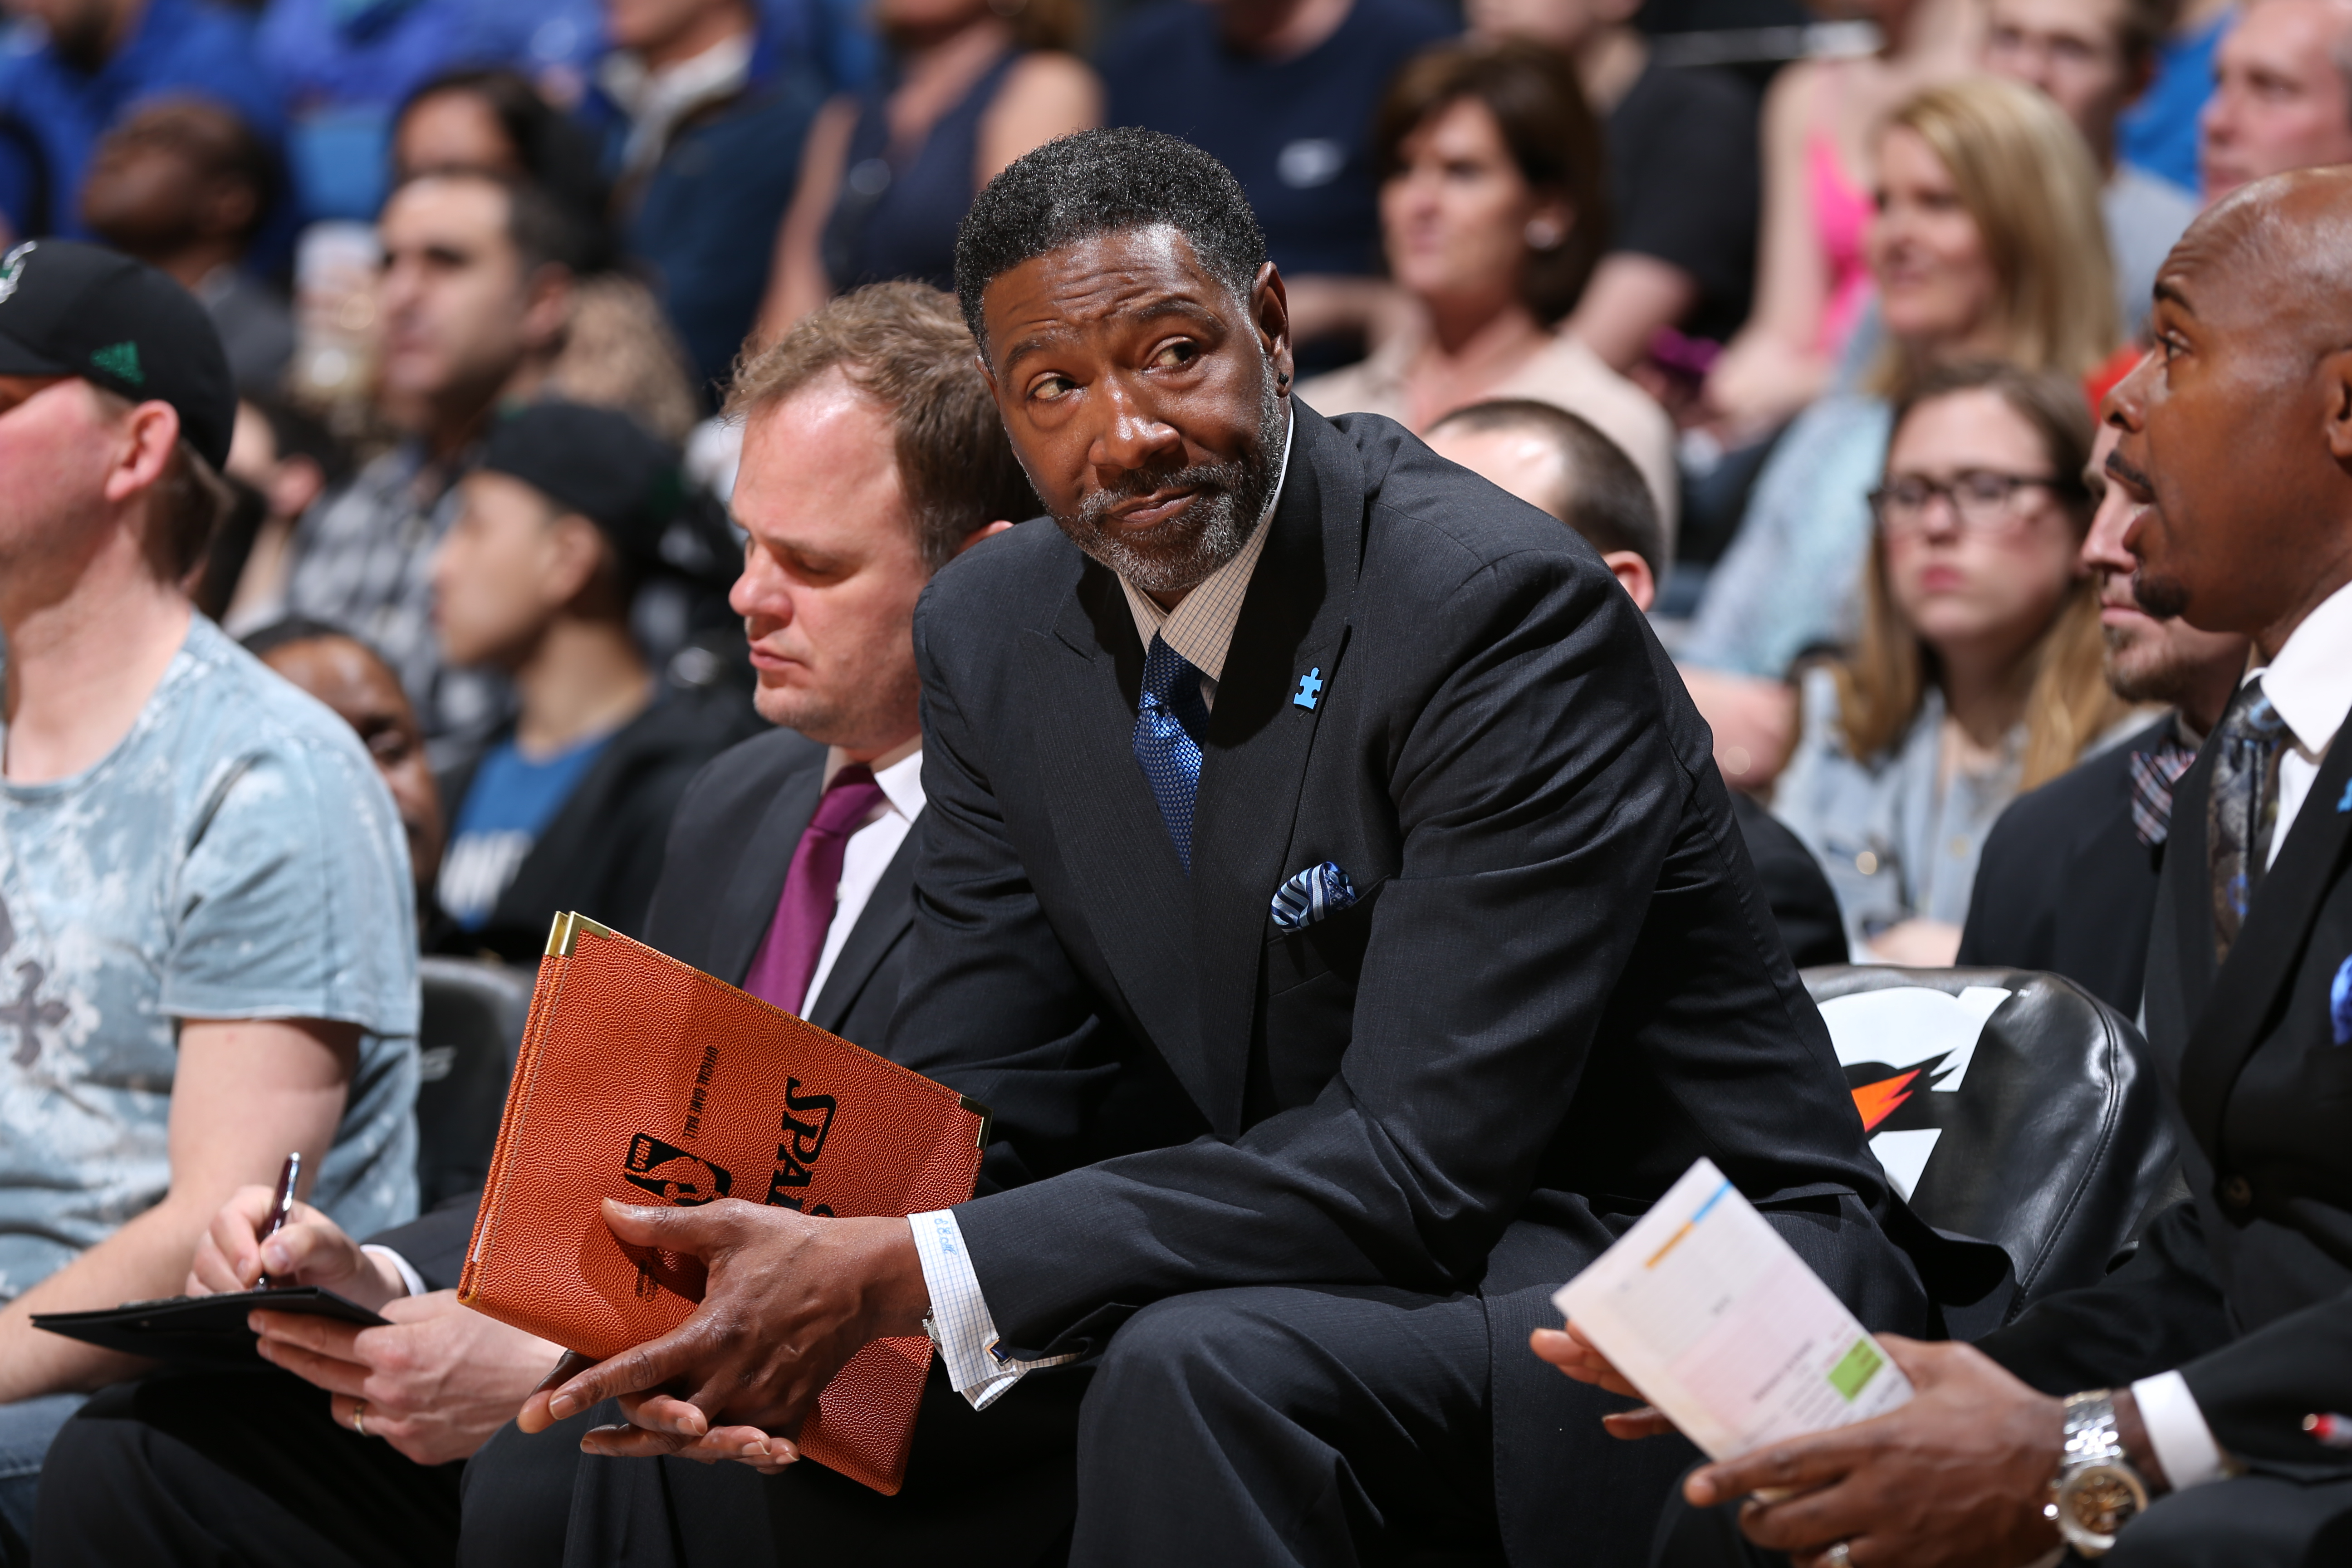 MINNEAPOLIS, MN - APRIL 1: Sam Mitchell assistant coach of the Minnesota Timberwolves sits on the sideline during a game against the Toronto Raptors on April 1, 2015 at Target Center in Minneapolis, Minnesota. (Photo by David Sherman/NBAE via Getty Images